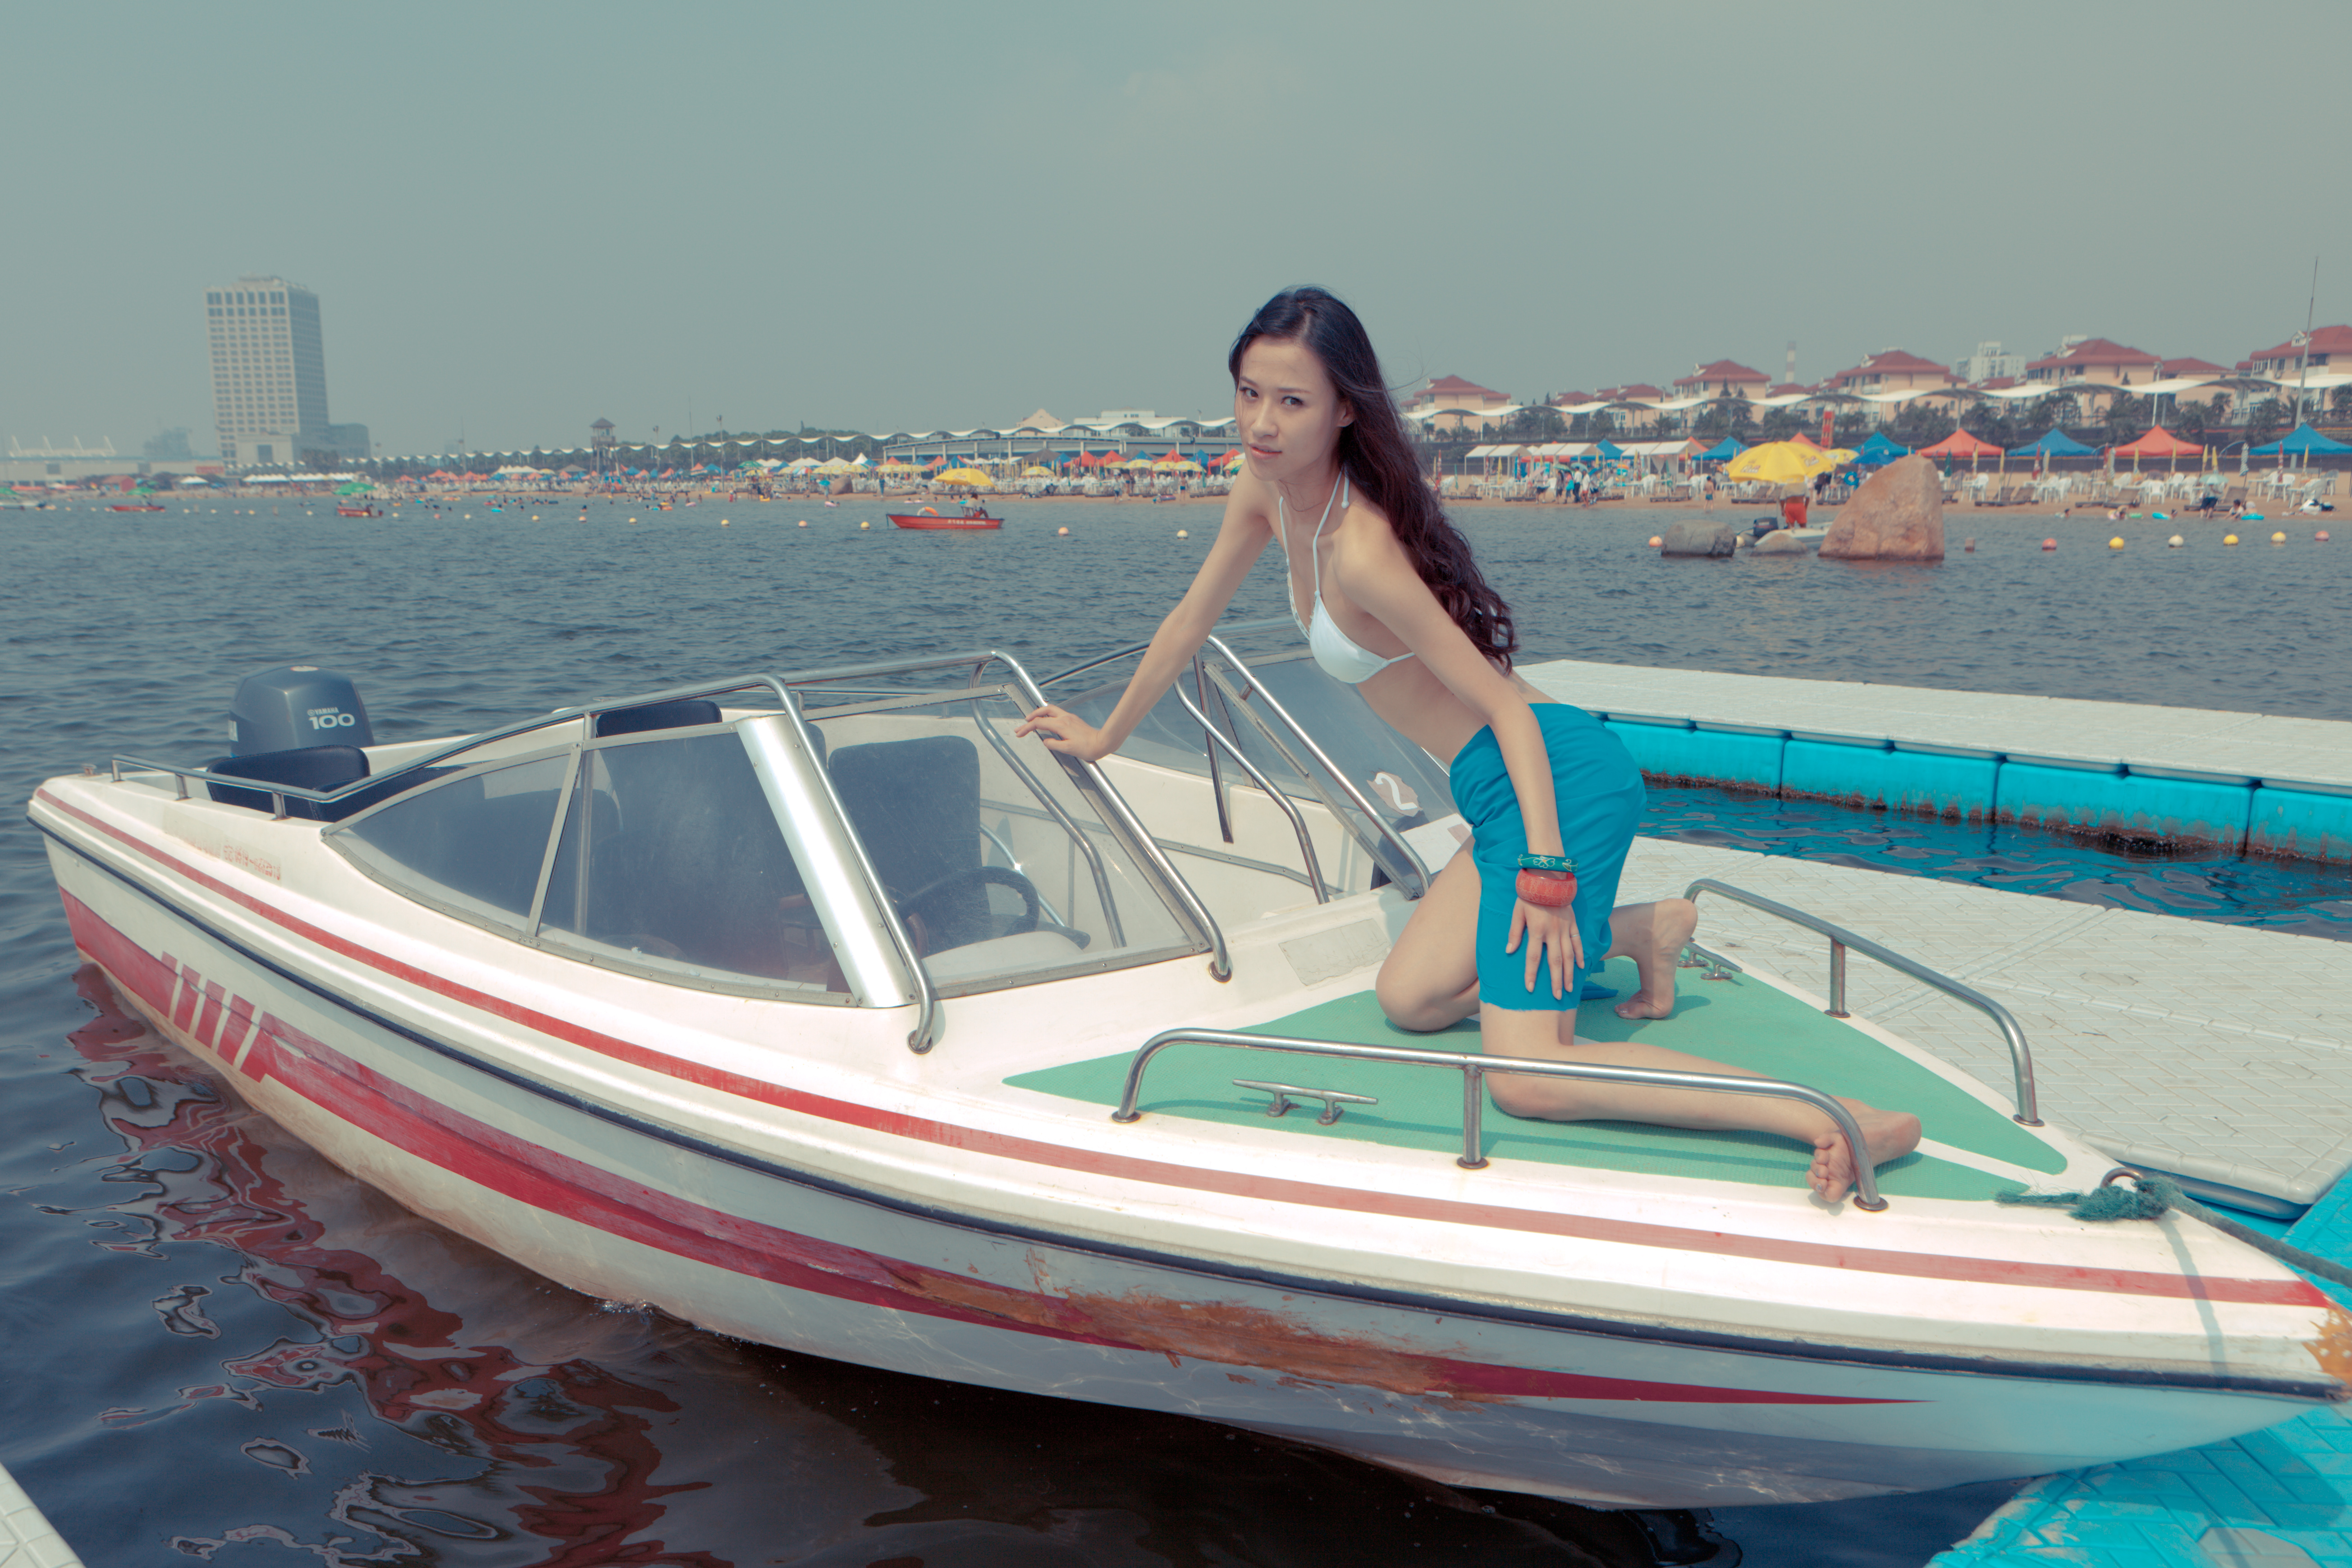 File:Tasty Chinese model on a boat at the beach. (6772360467).jpg ...